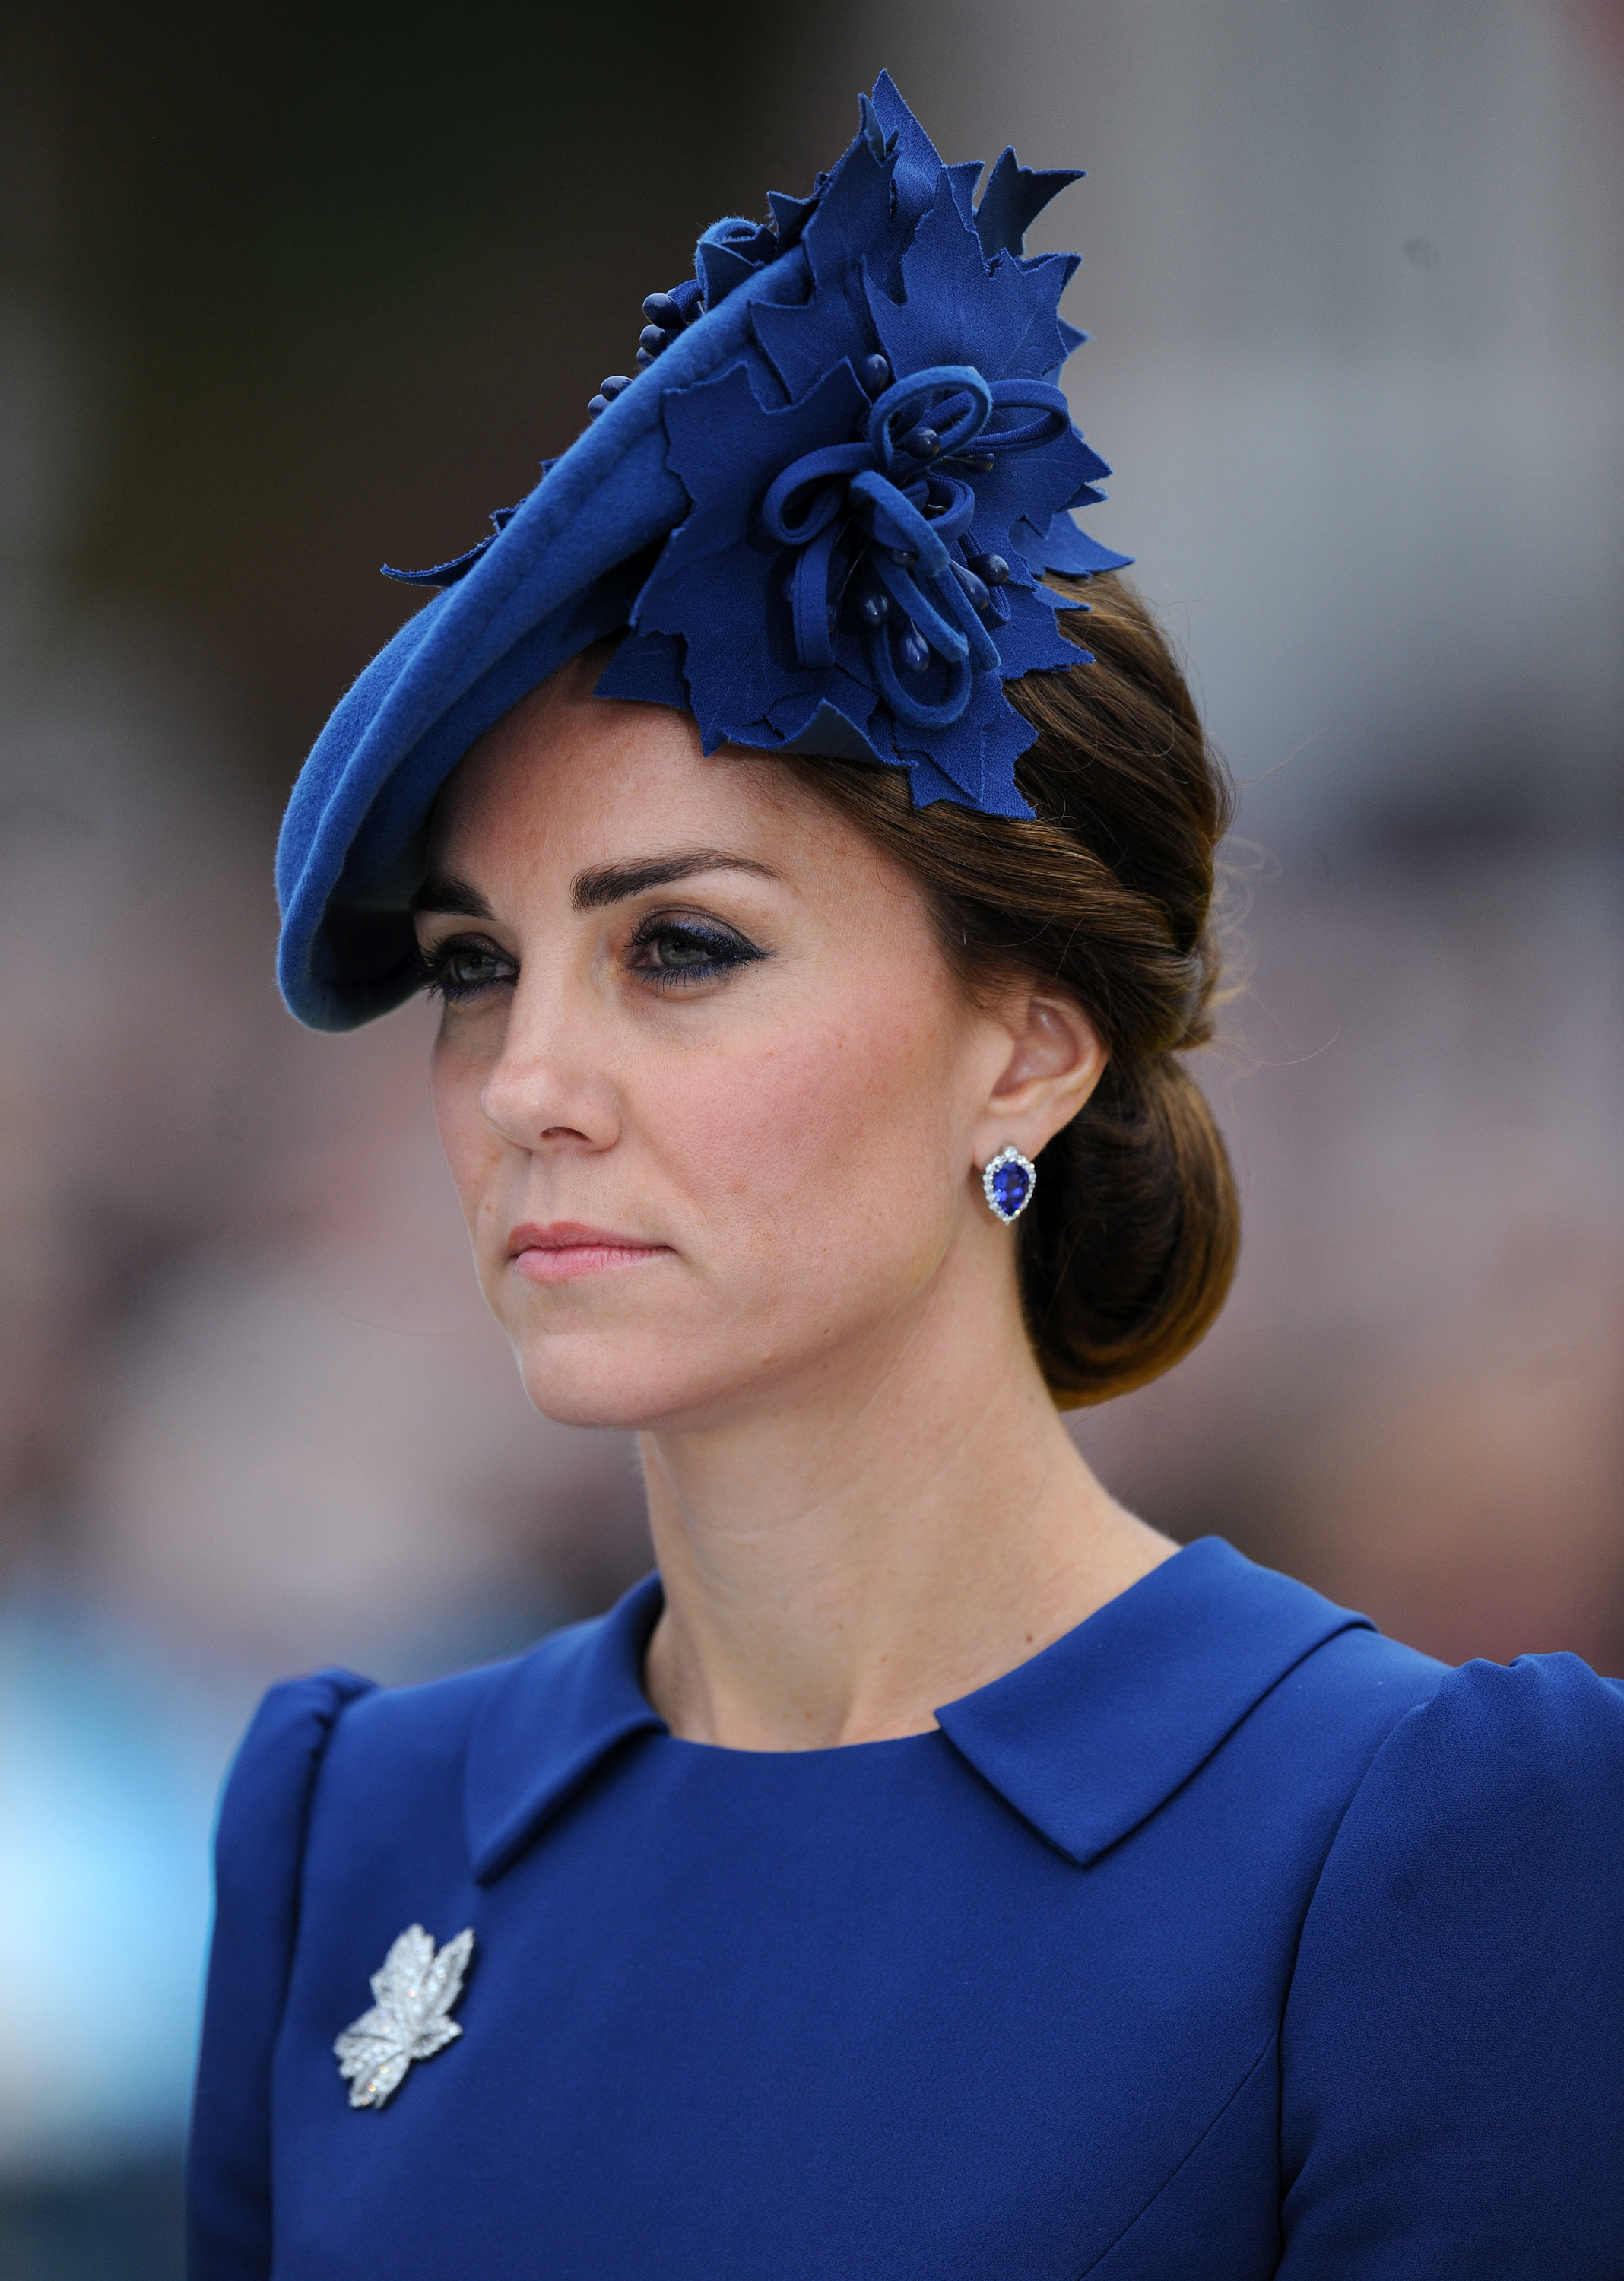 Kate Middleton hats  the Duchess of Cambridge s 21 best looks ... 3685a4c8cd9d